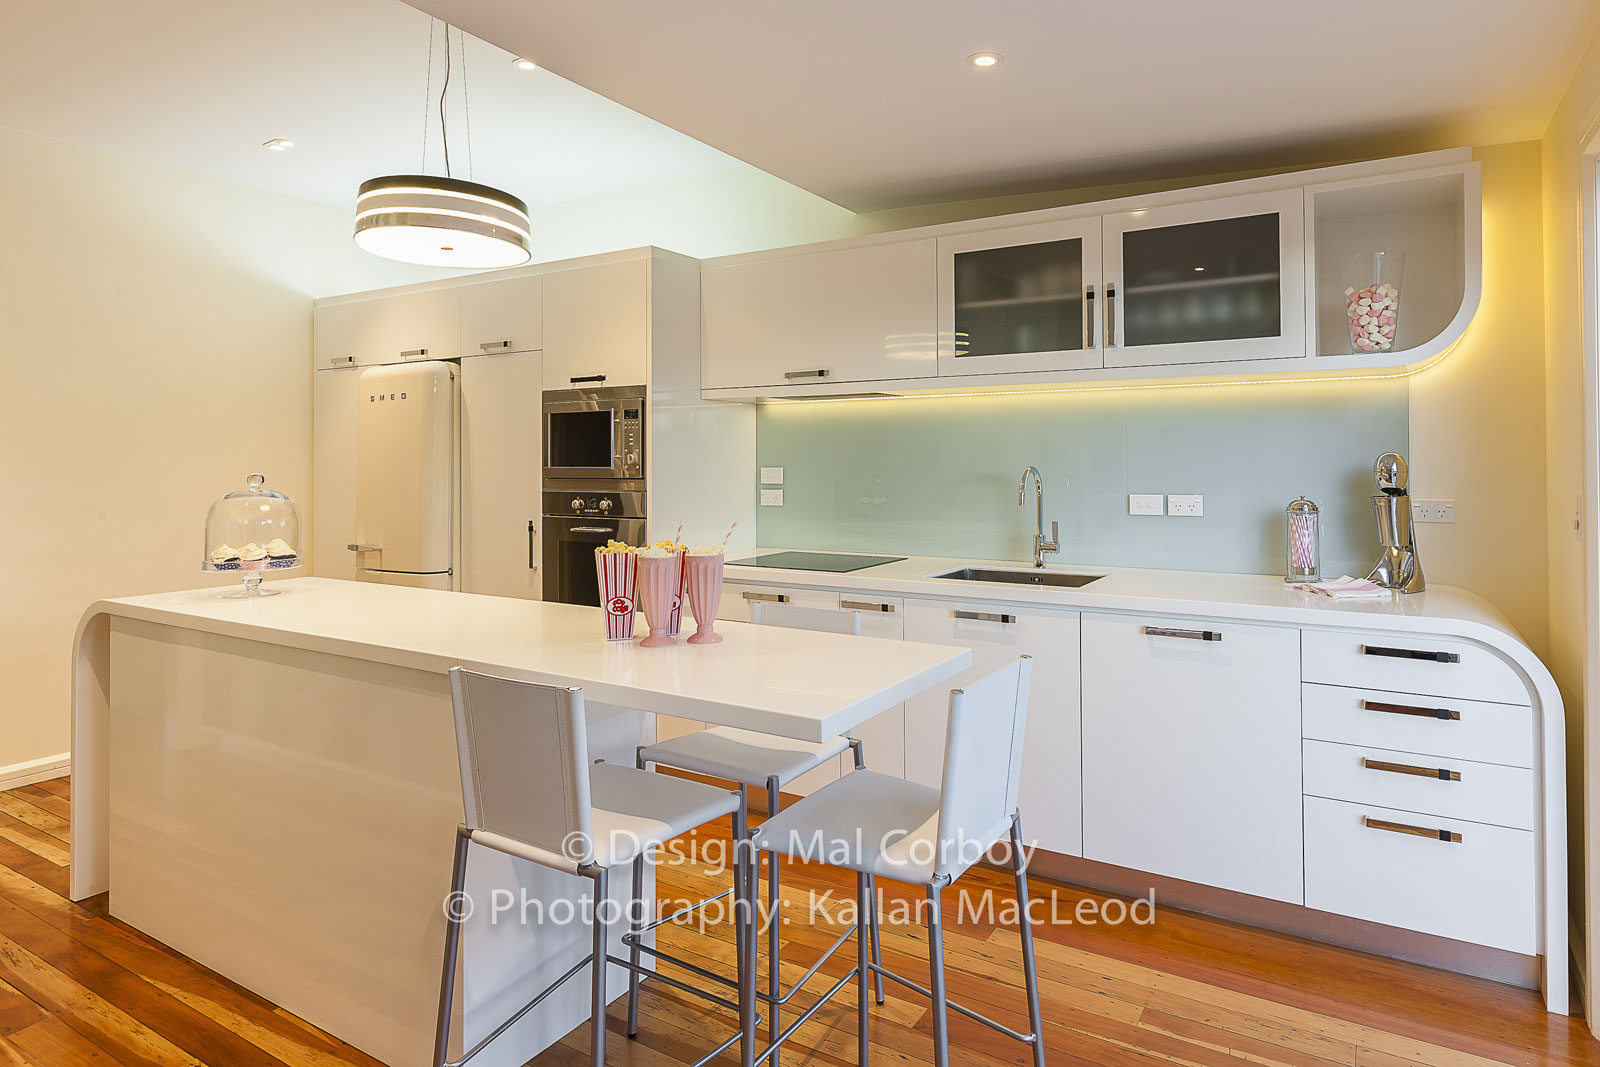 MT EDEN – KITCHEN